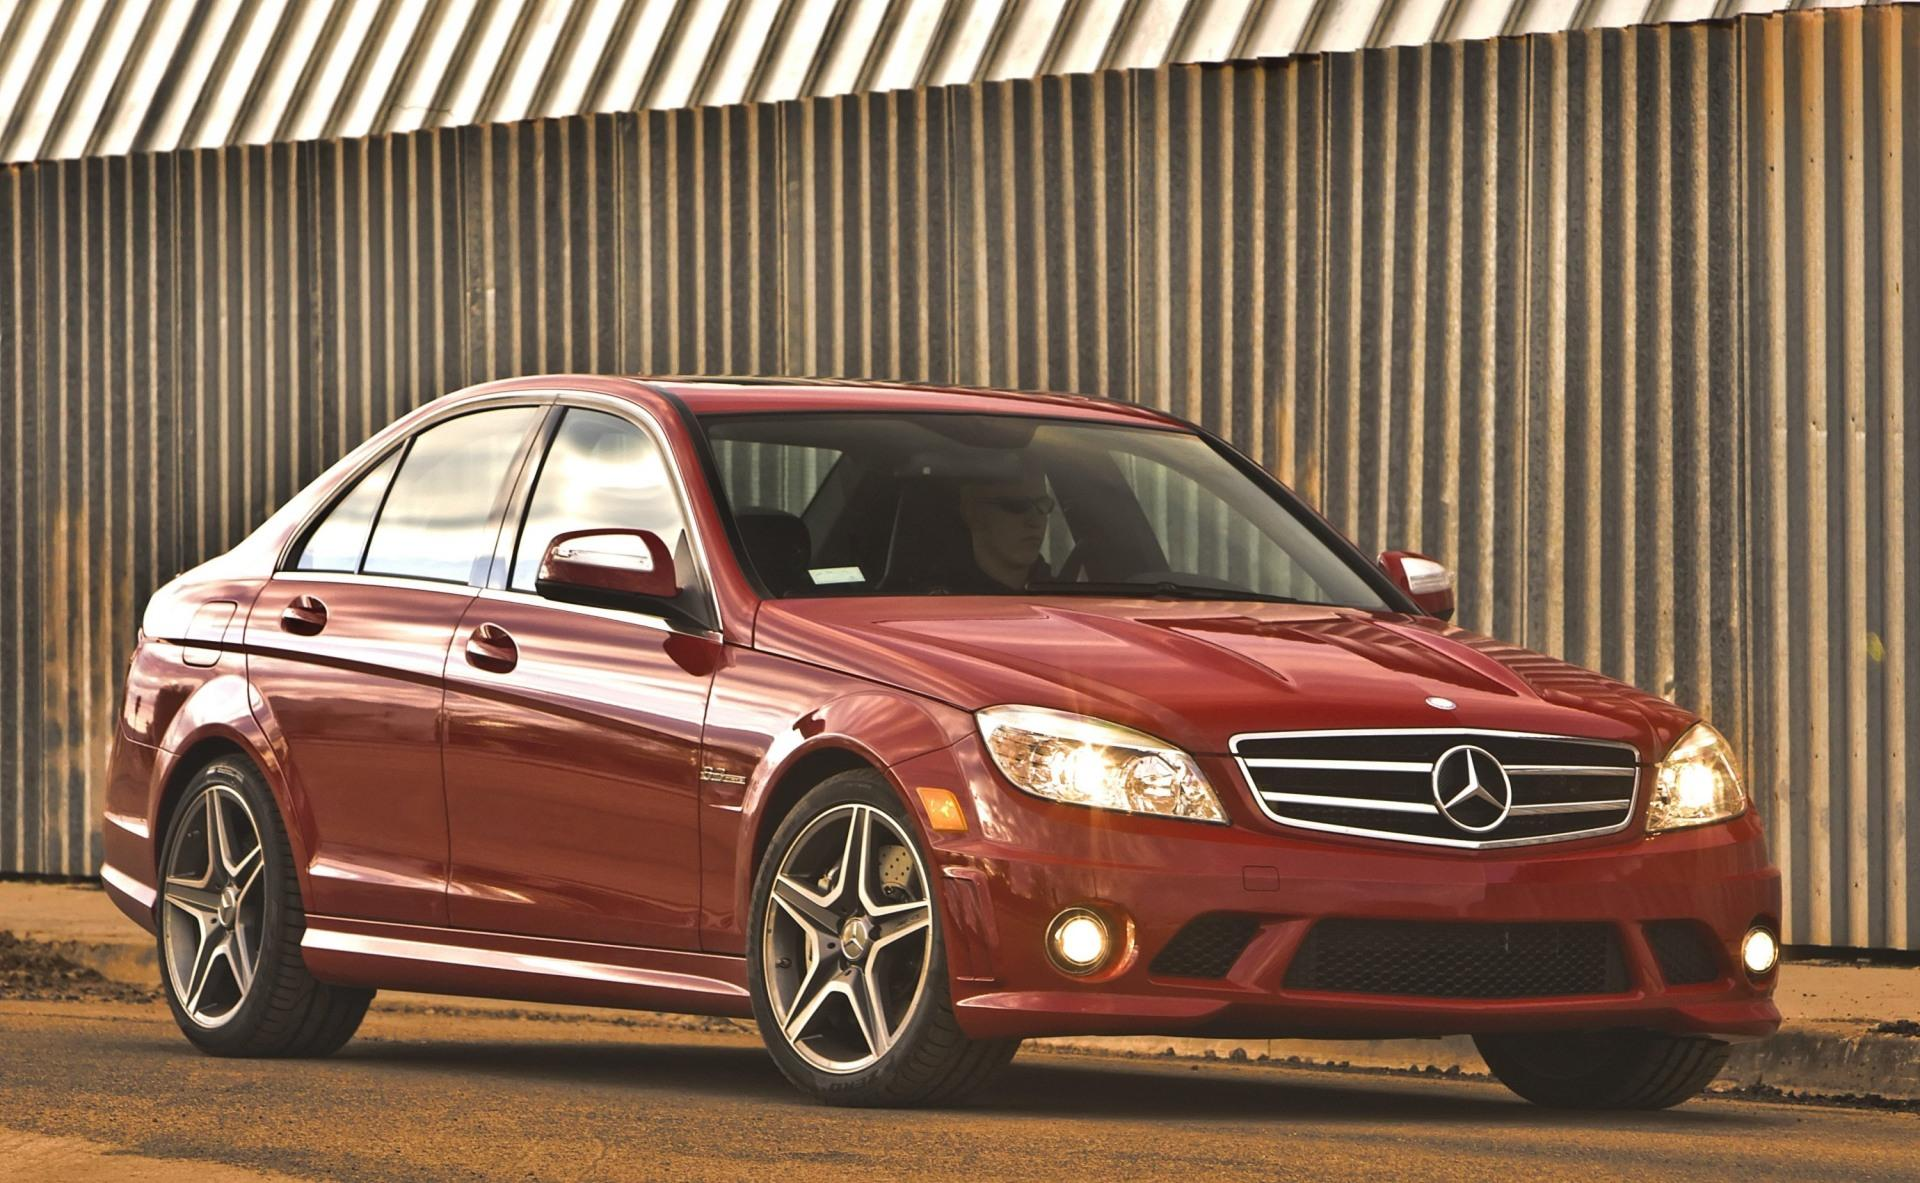 2010 mercedes benz c class technical specifications and for Mercedes benz c300 engine